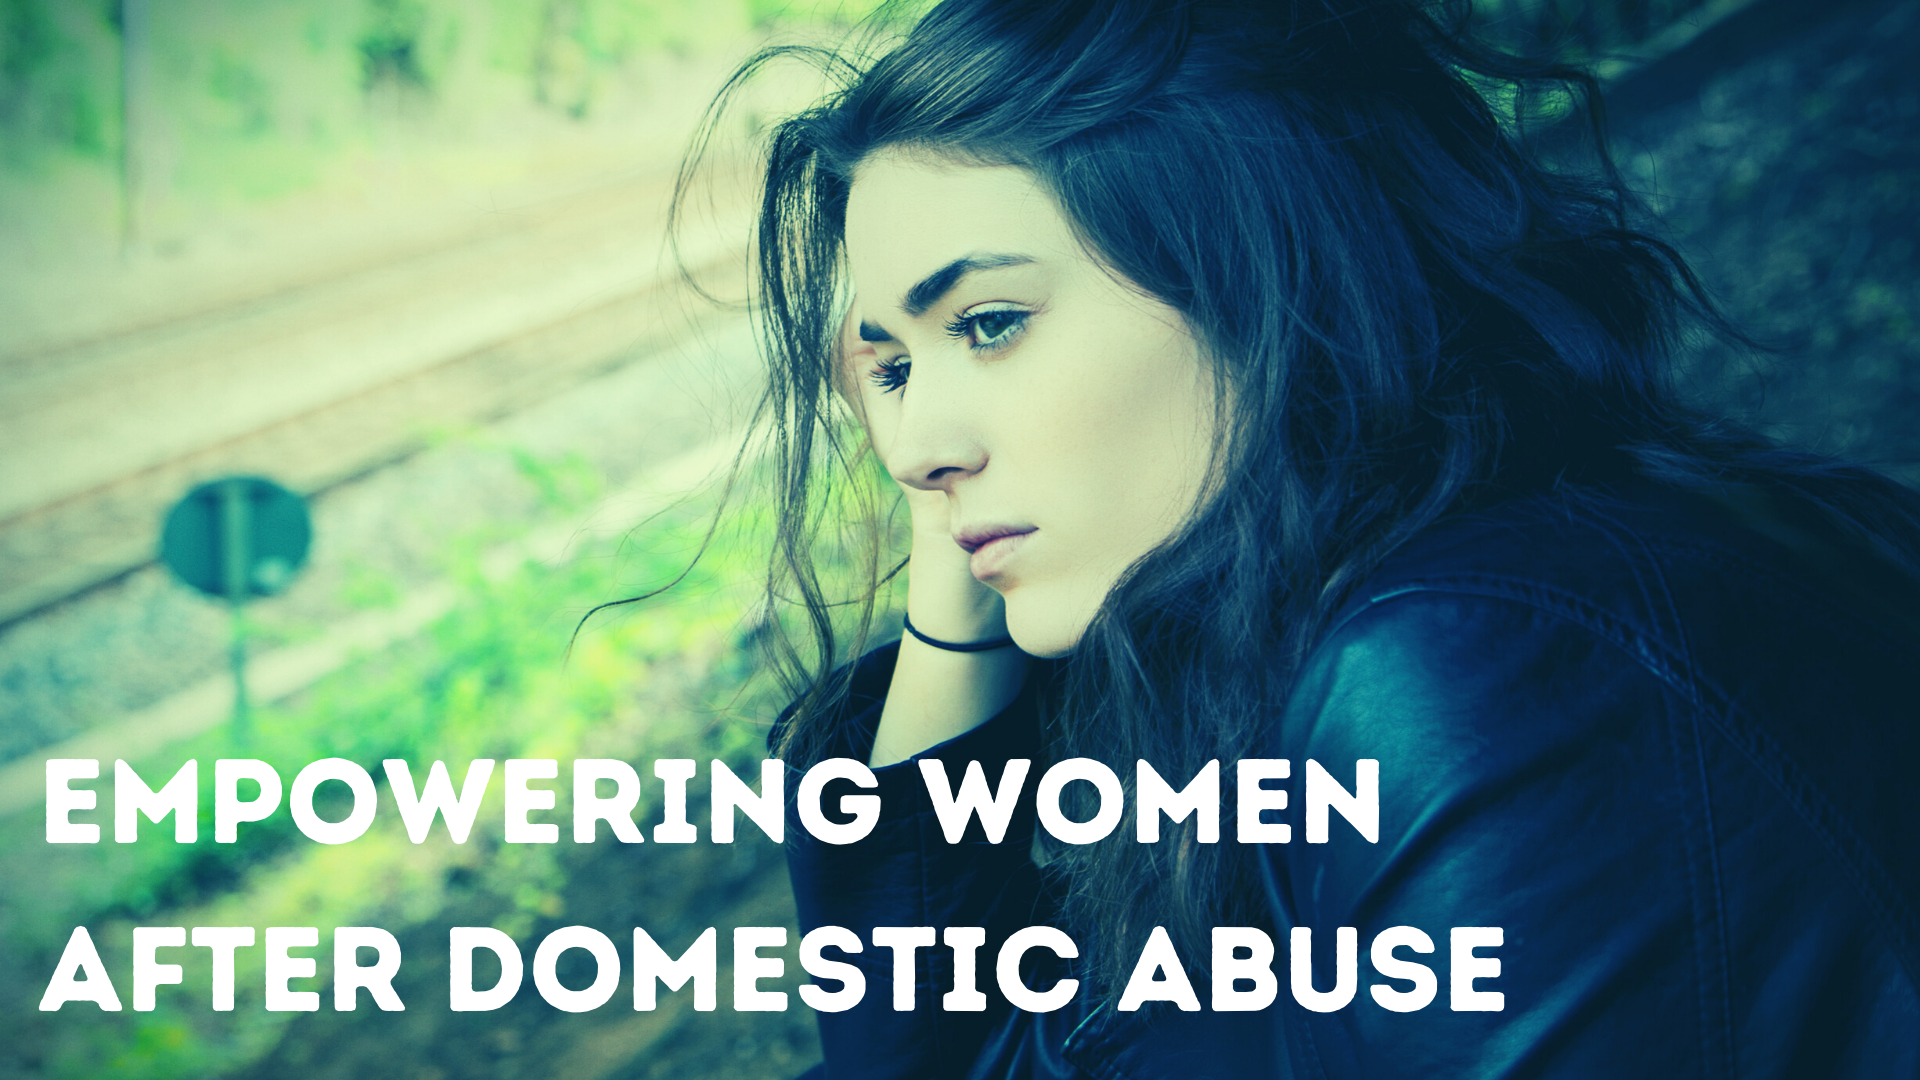 Empowering women after domestic abuse